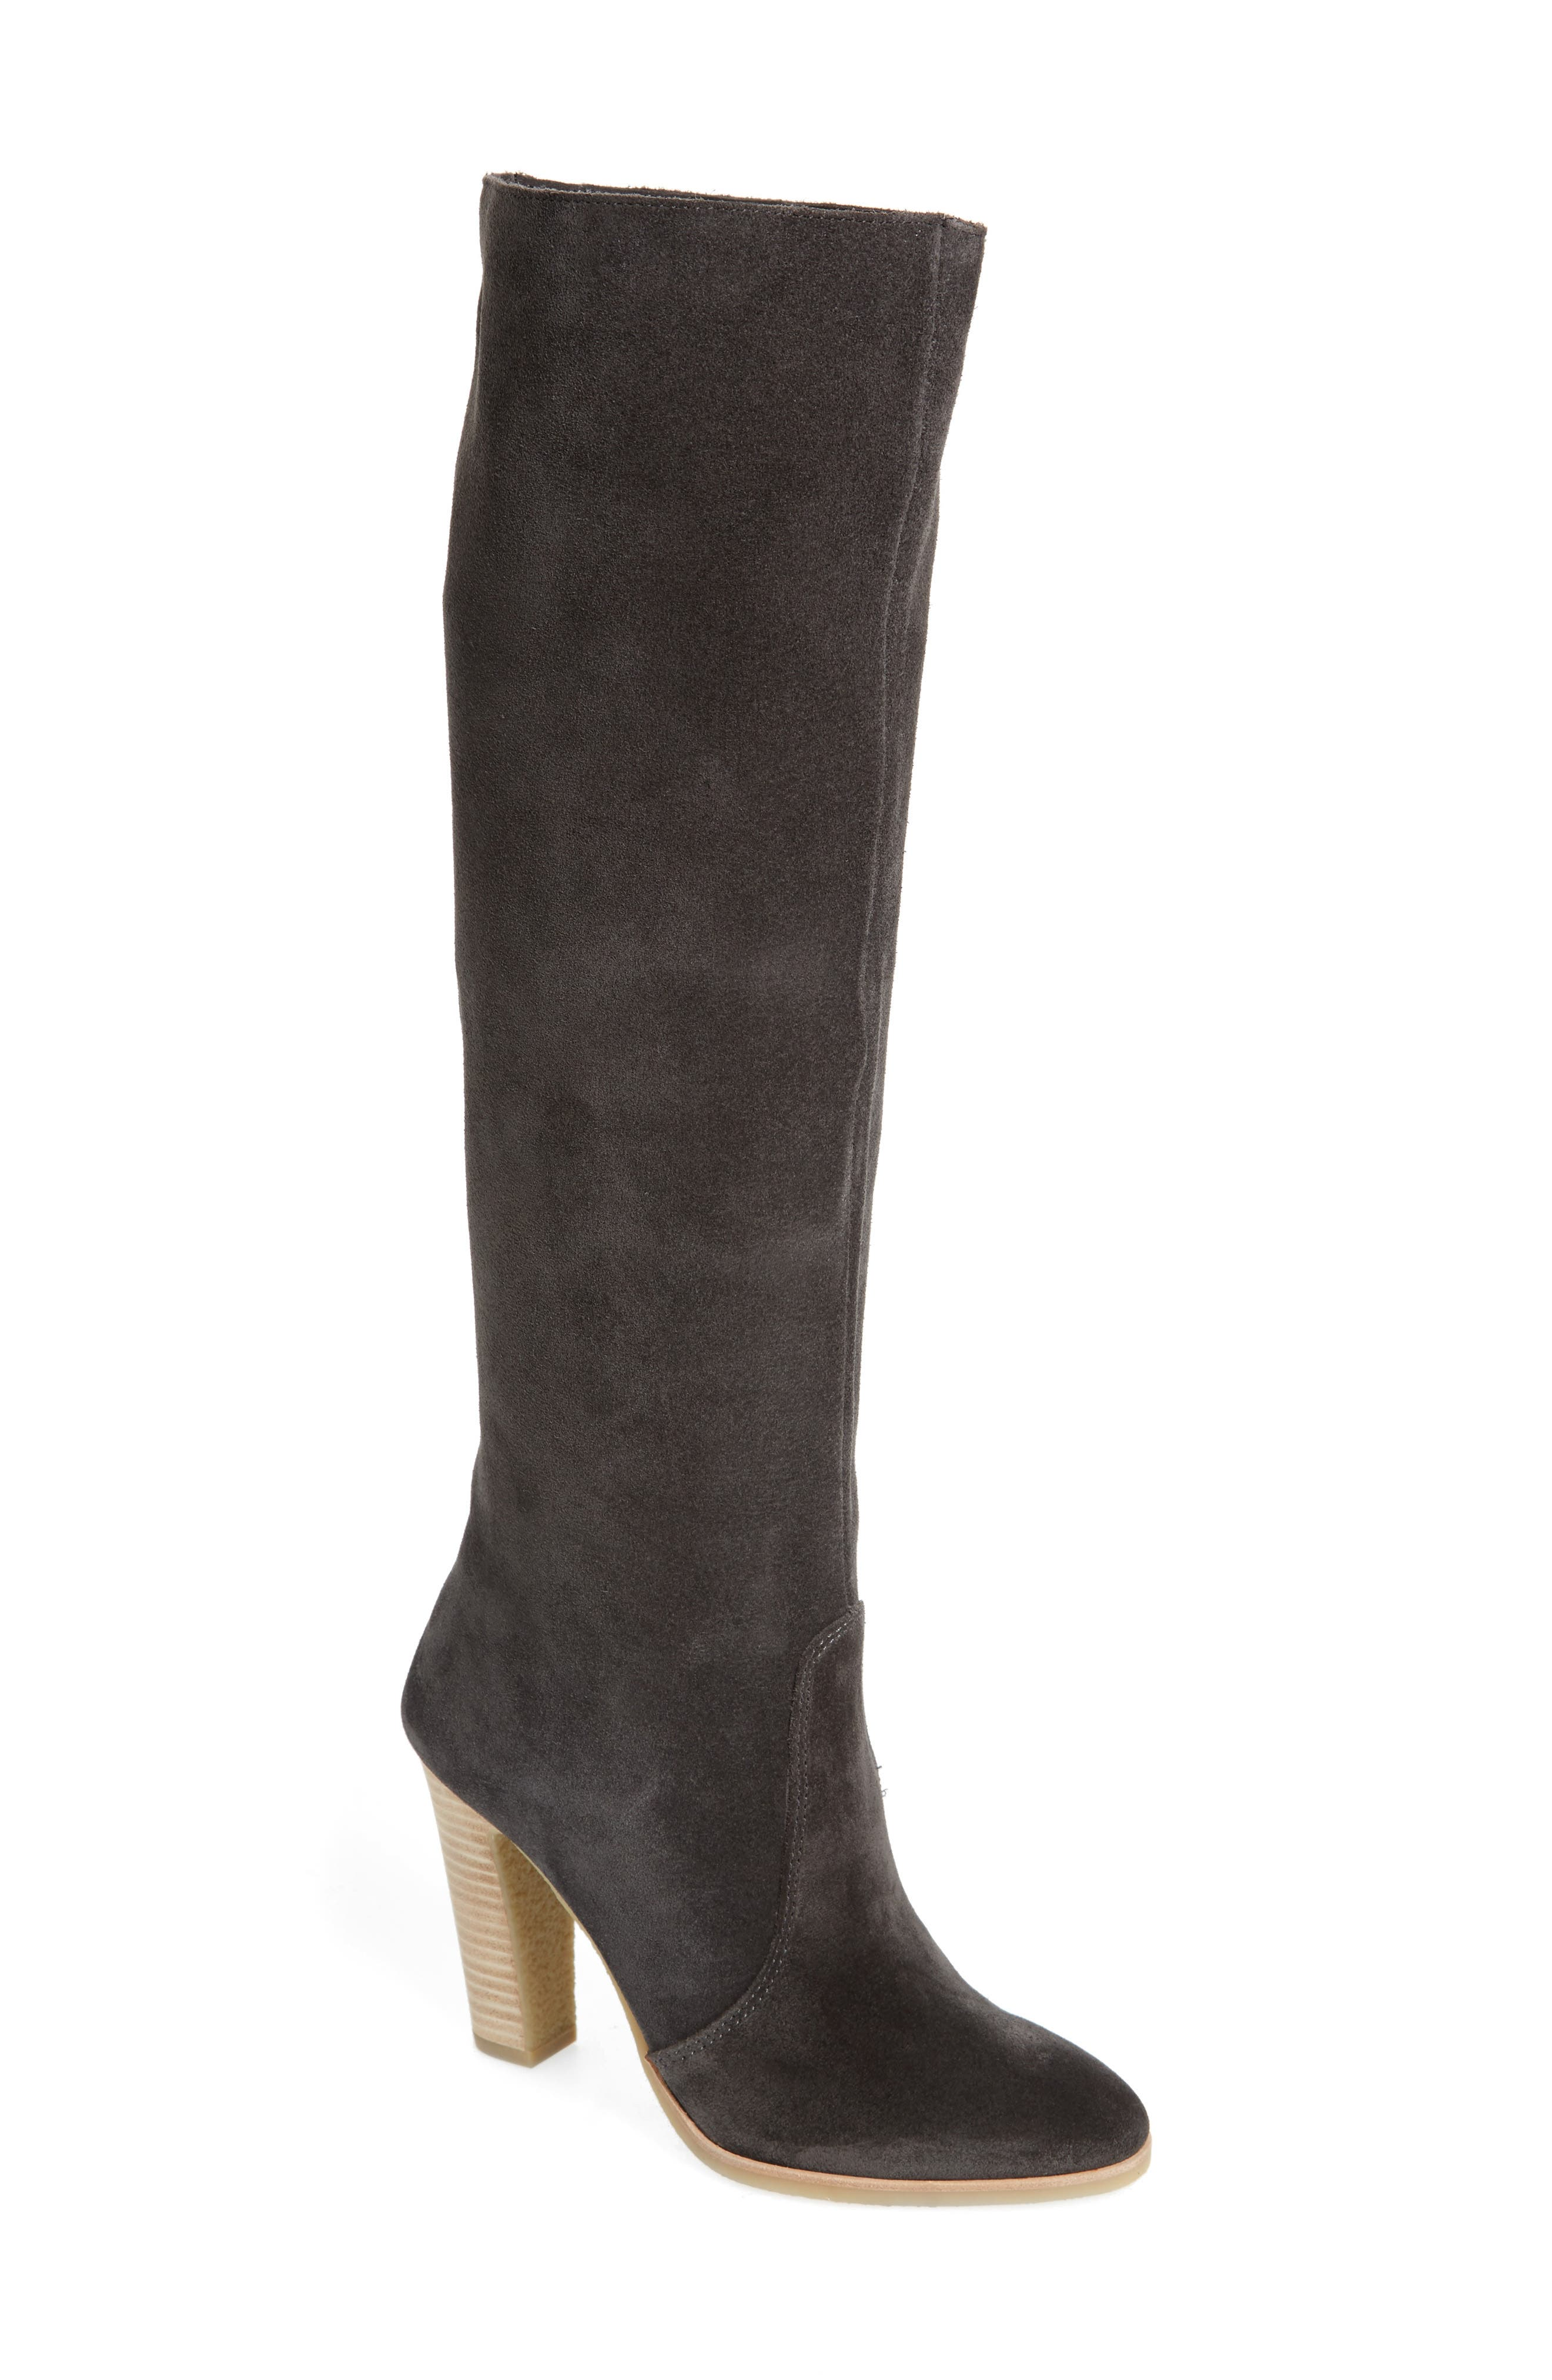 Celine Knee-High Boot,                         Main,                         color, Anthracite Suede